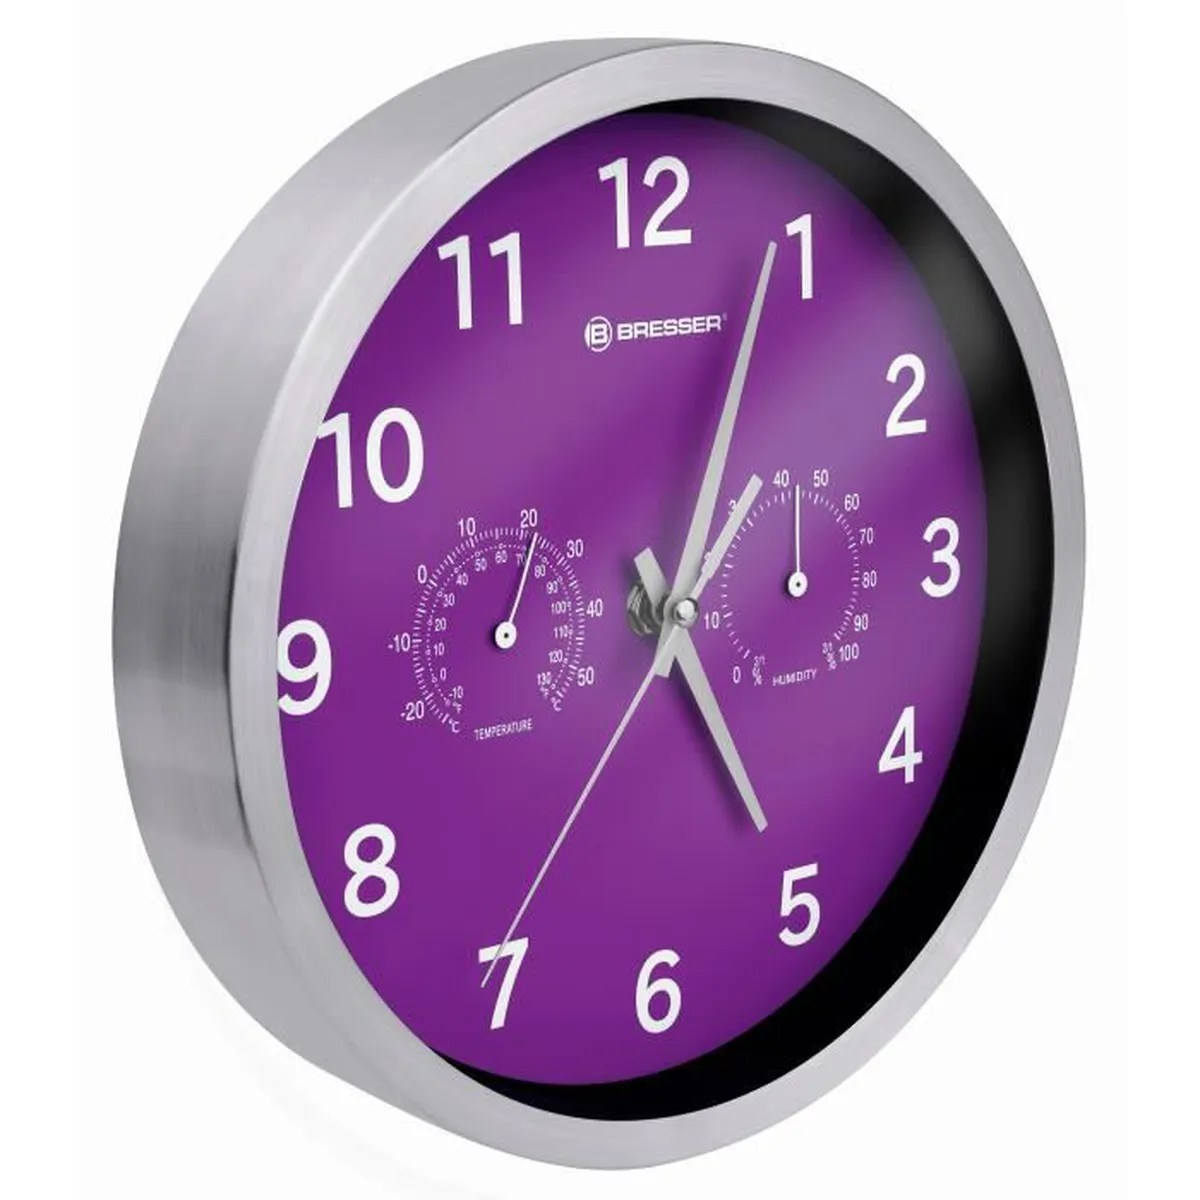 Horloge Murale Couleur Bresser Mytime Thermo Hygro Horloge Murale 25cm Couleur Violet